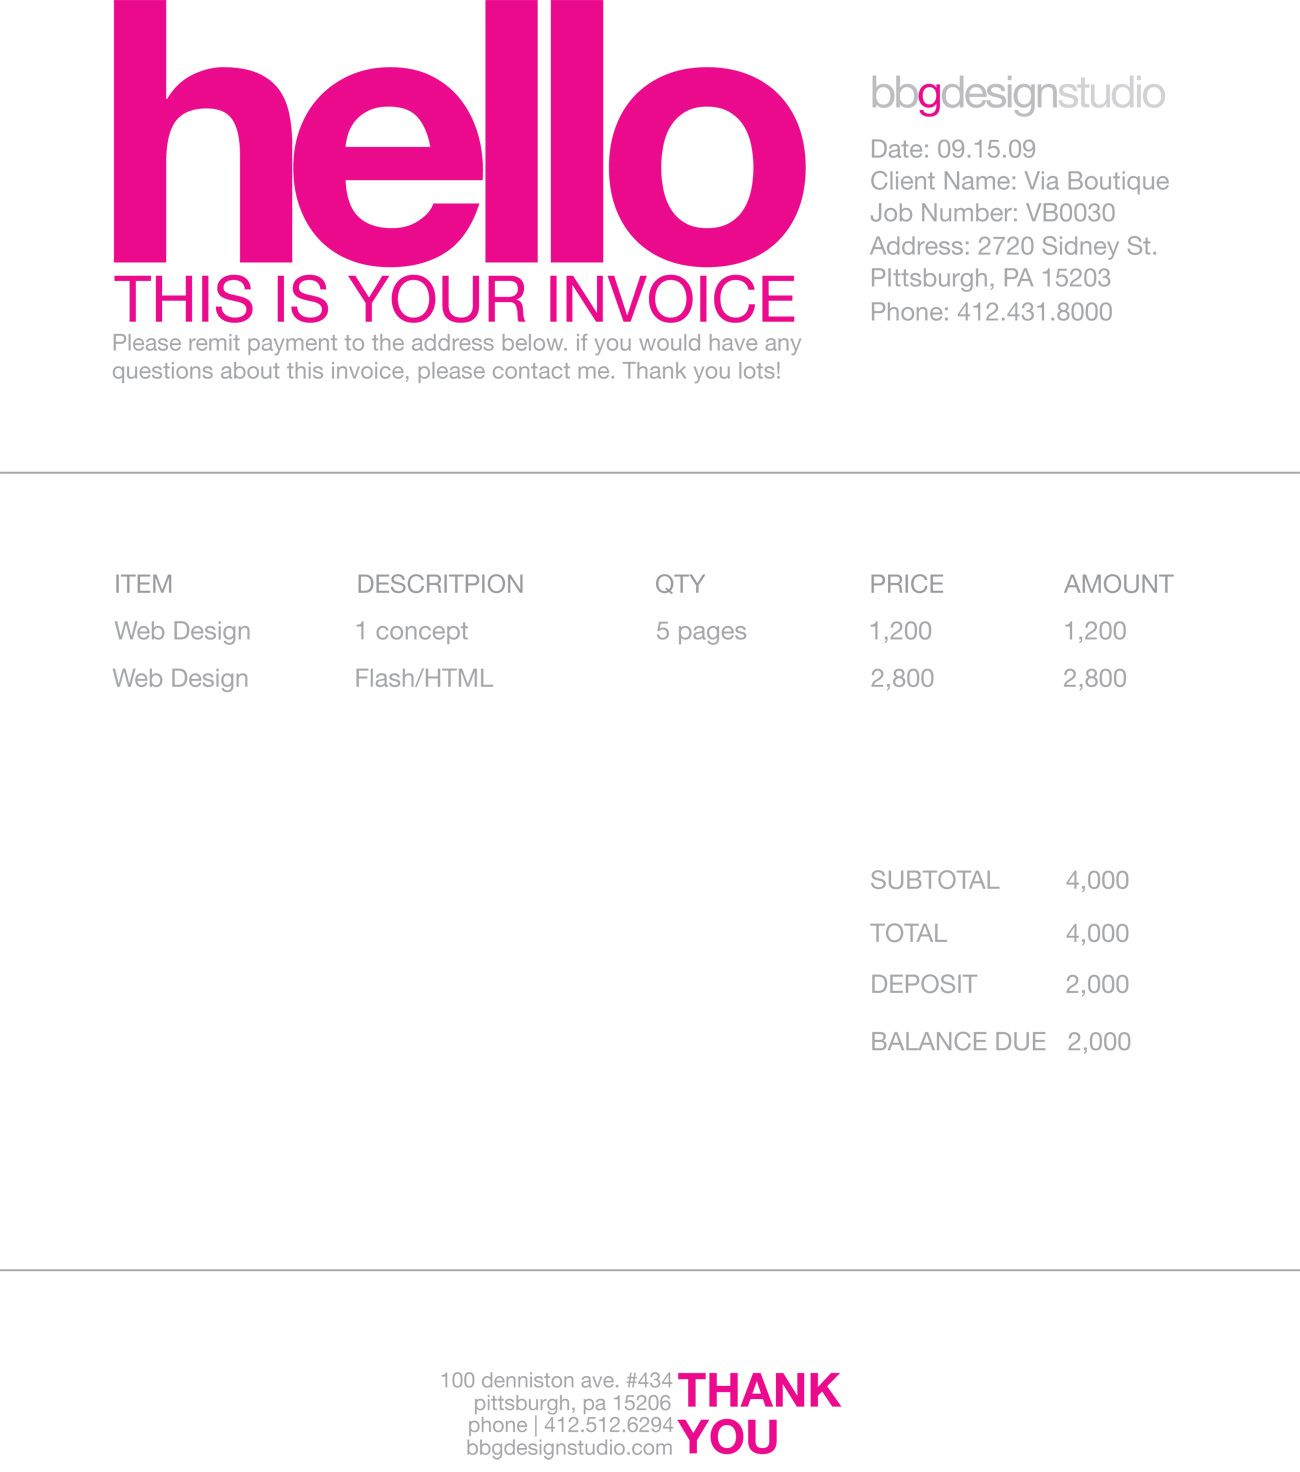 Pxworkoutfreeus  Personable  Images About Invoice Design On Pinterest With Likable Gross Box Office Receipts Besides Blank Receipt Template Word Furthermore Simple Receipts With Beauteous Company Receipt Template Also Free Sales Receipt In Addition Hertz Rental Receipts And Where Can I Find My Receipt Number For Uscis As Well As Cash Register Receipt Template Additionally Free Online Receipt Template From Pinterestcom With Pxworkoutfreeus  Likable  Images About Invoice Design On Pinterest With Beauteous Gross Box Office Receipts Besides Blank Receipt Template Word Furthermore Simple Receipts And Personable Company Receipt Template Also Free Sales Receipt In Addition Hertz Rental Receipts From Pinterestcom